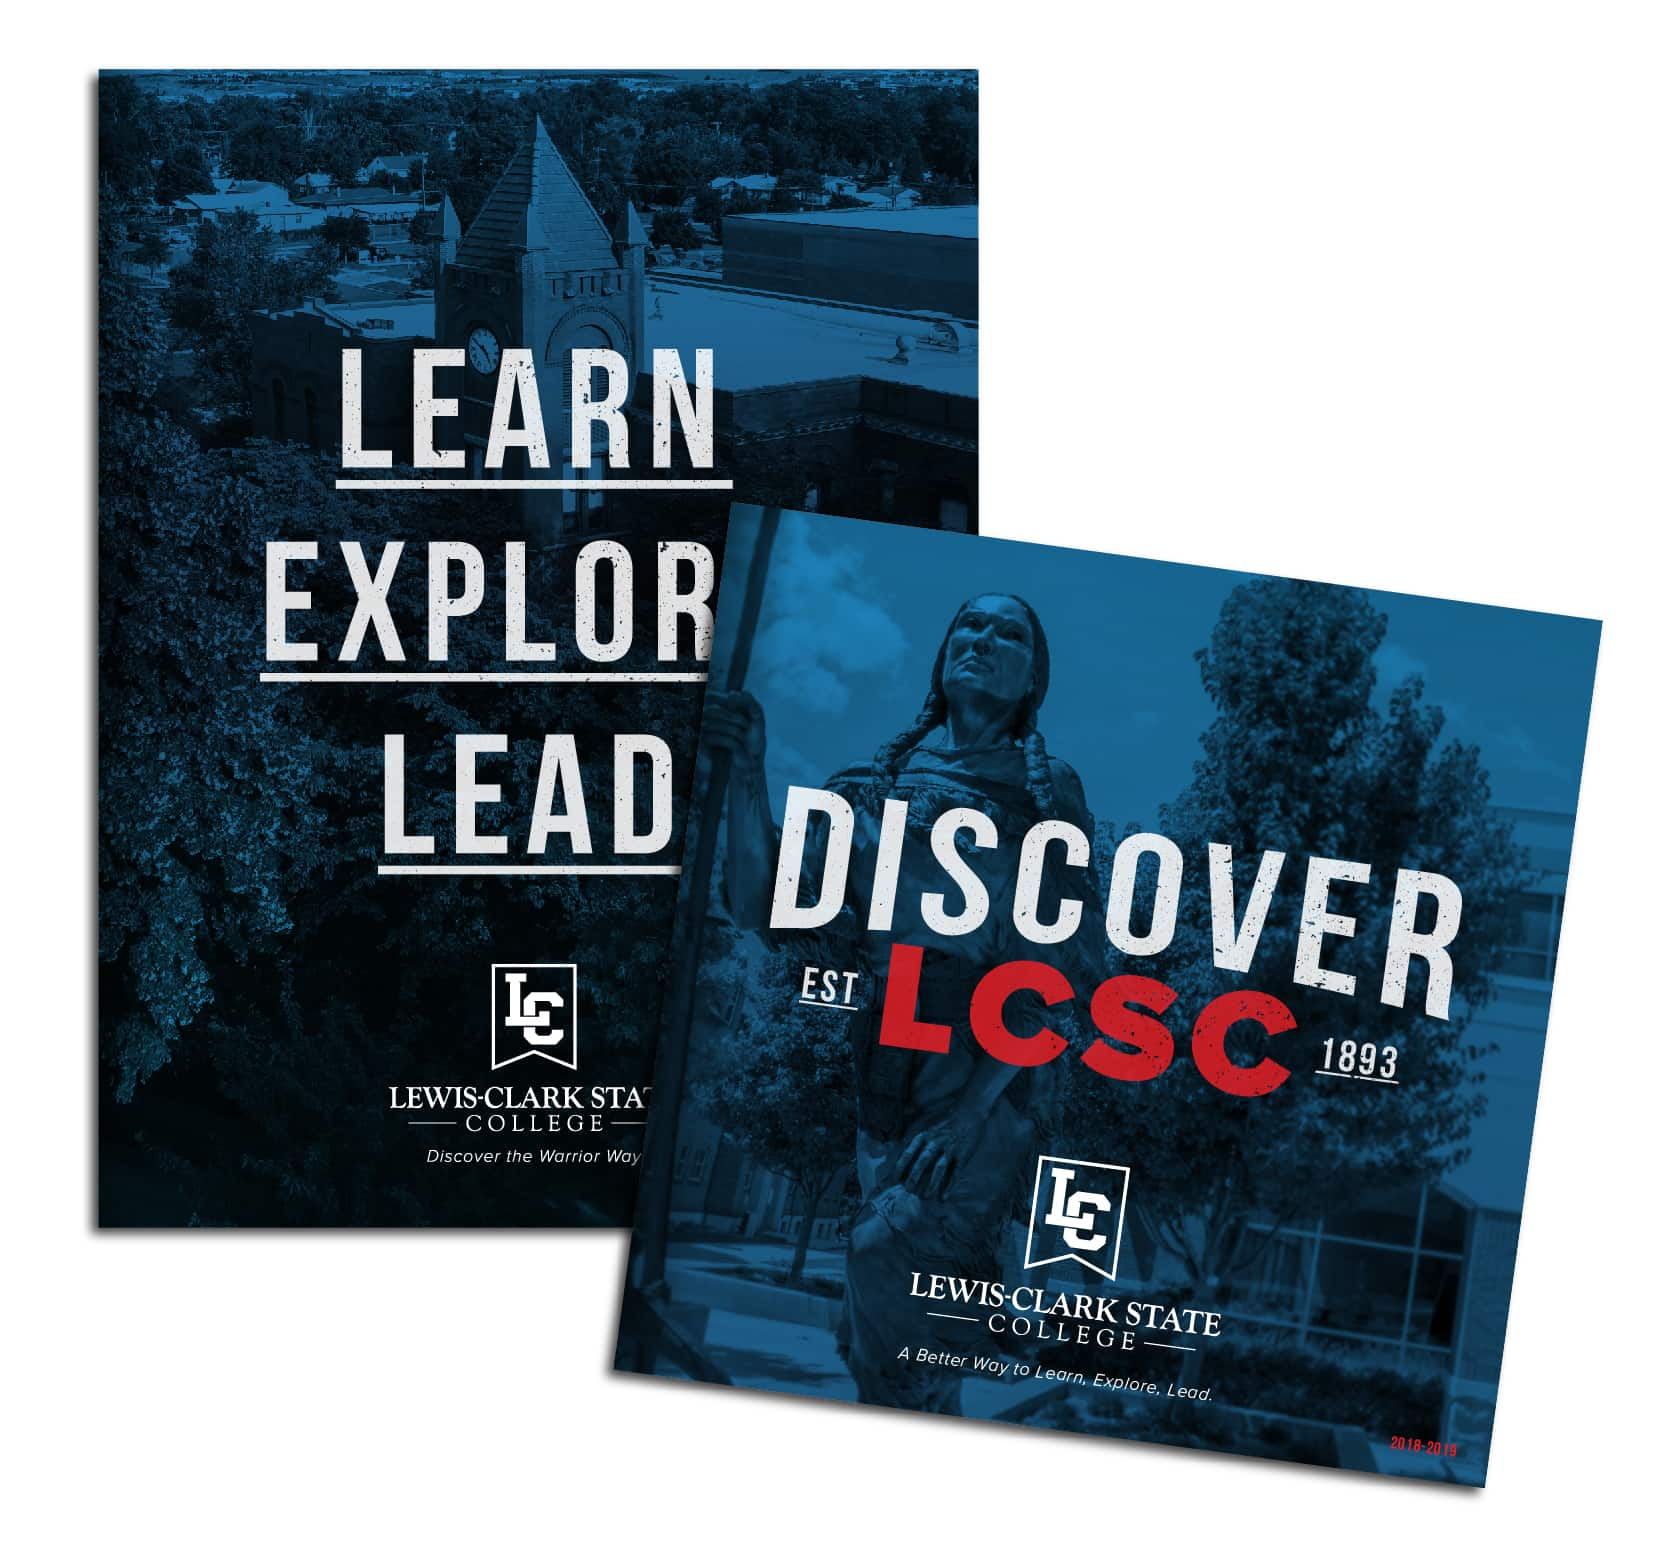 northwest-media-advertising-lewiston-idaho-washington-lcsc-student-recruitment-2019-03